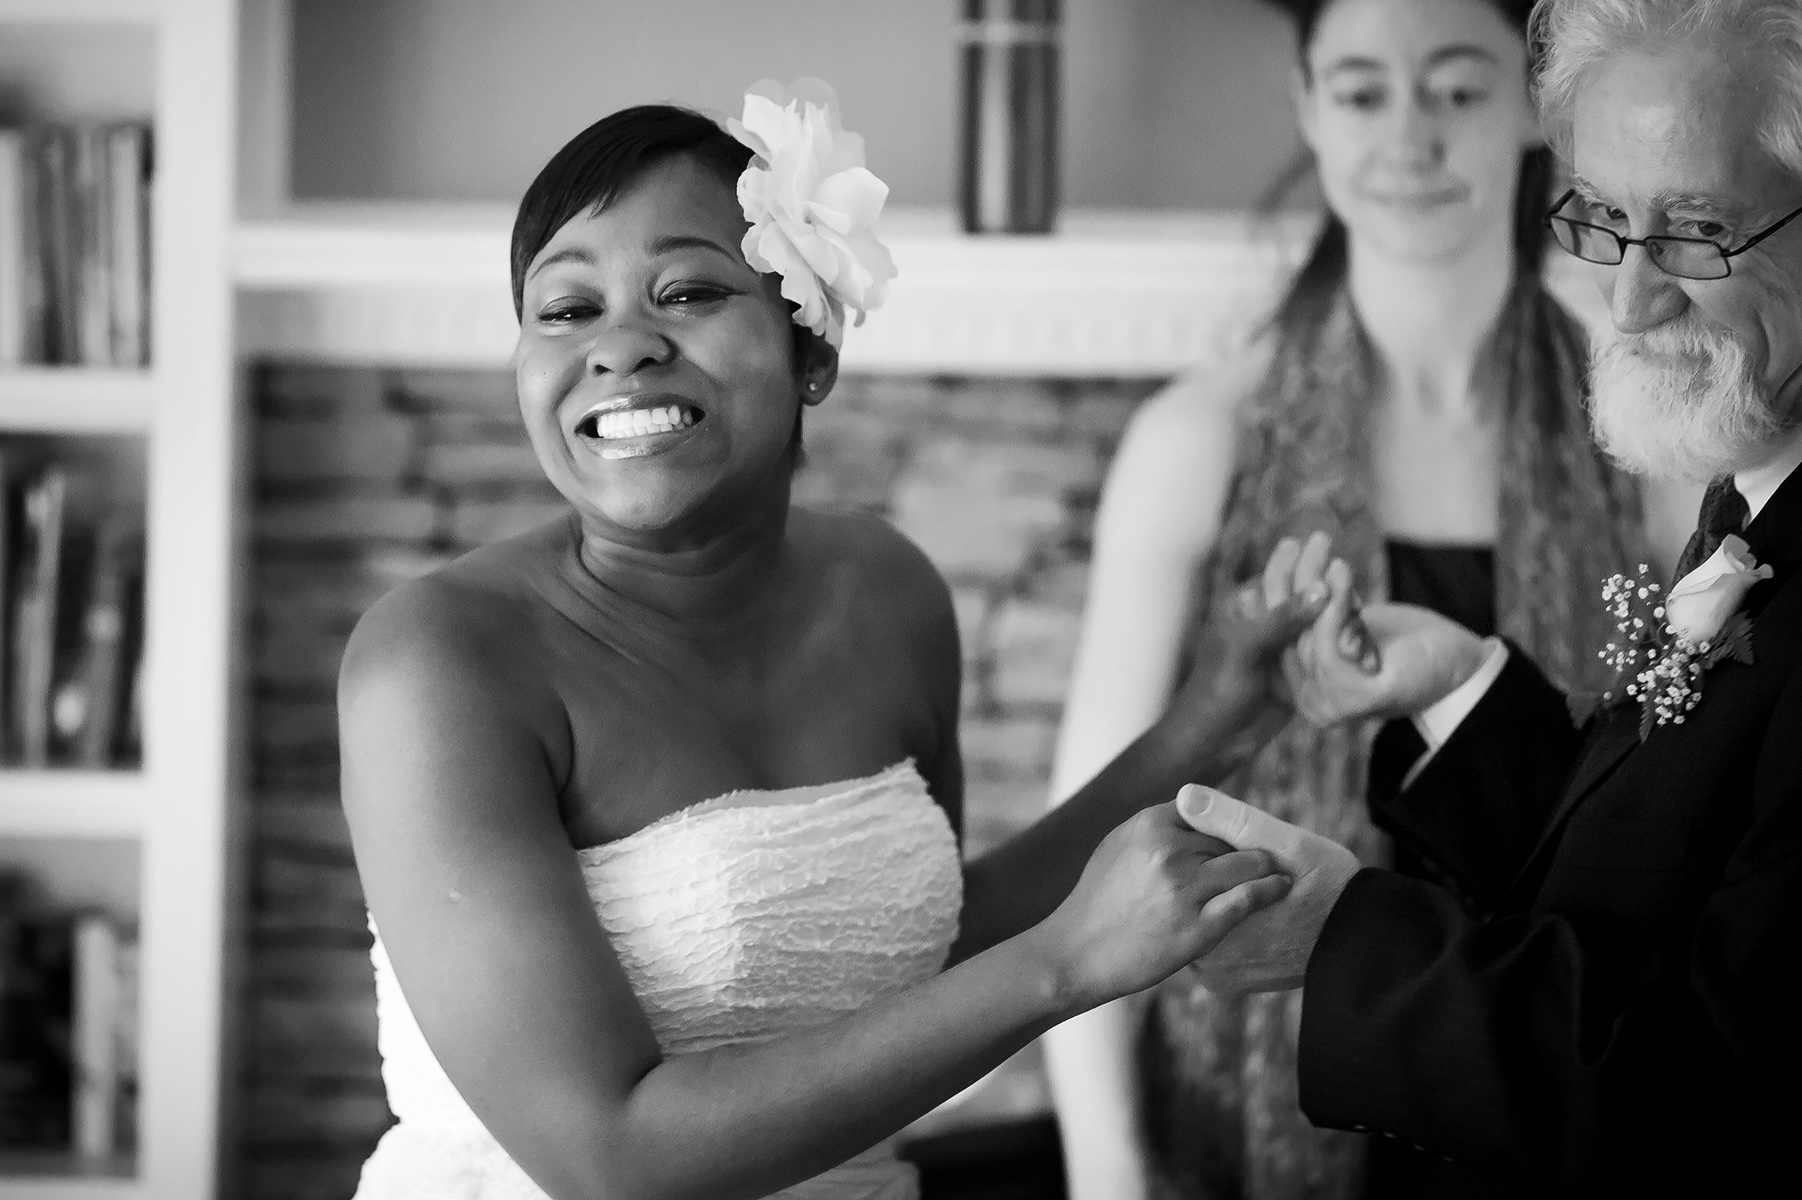 Georgia Wedding Photography for Sandy Springs | The bride flashes a beaming smile at her guests during the ceremony